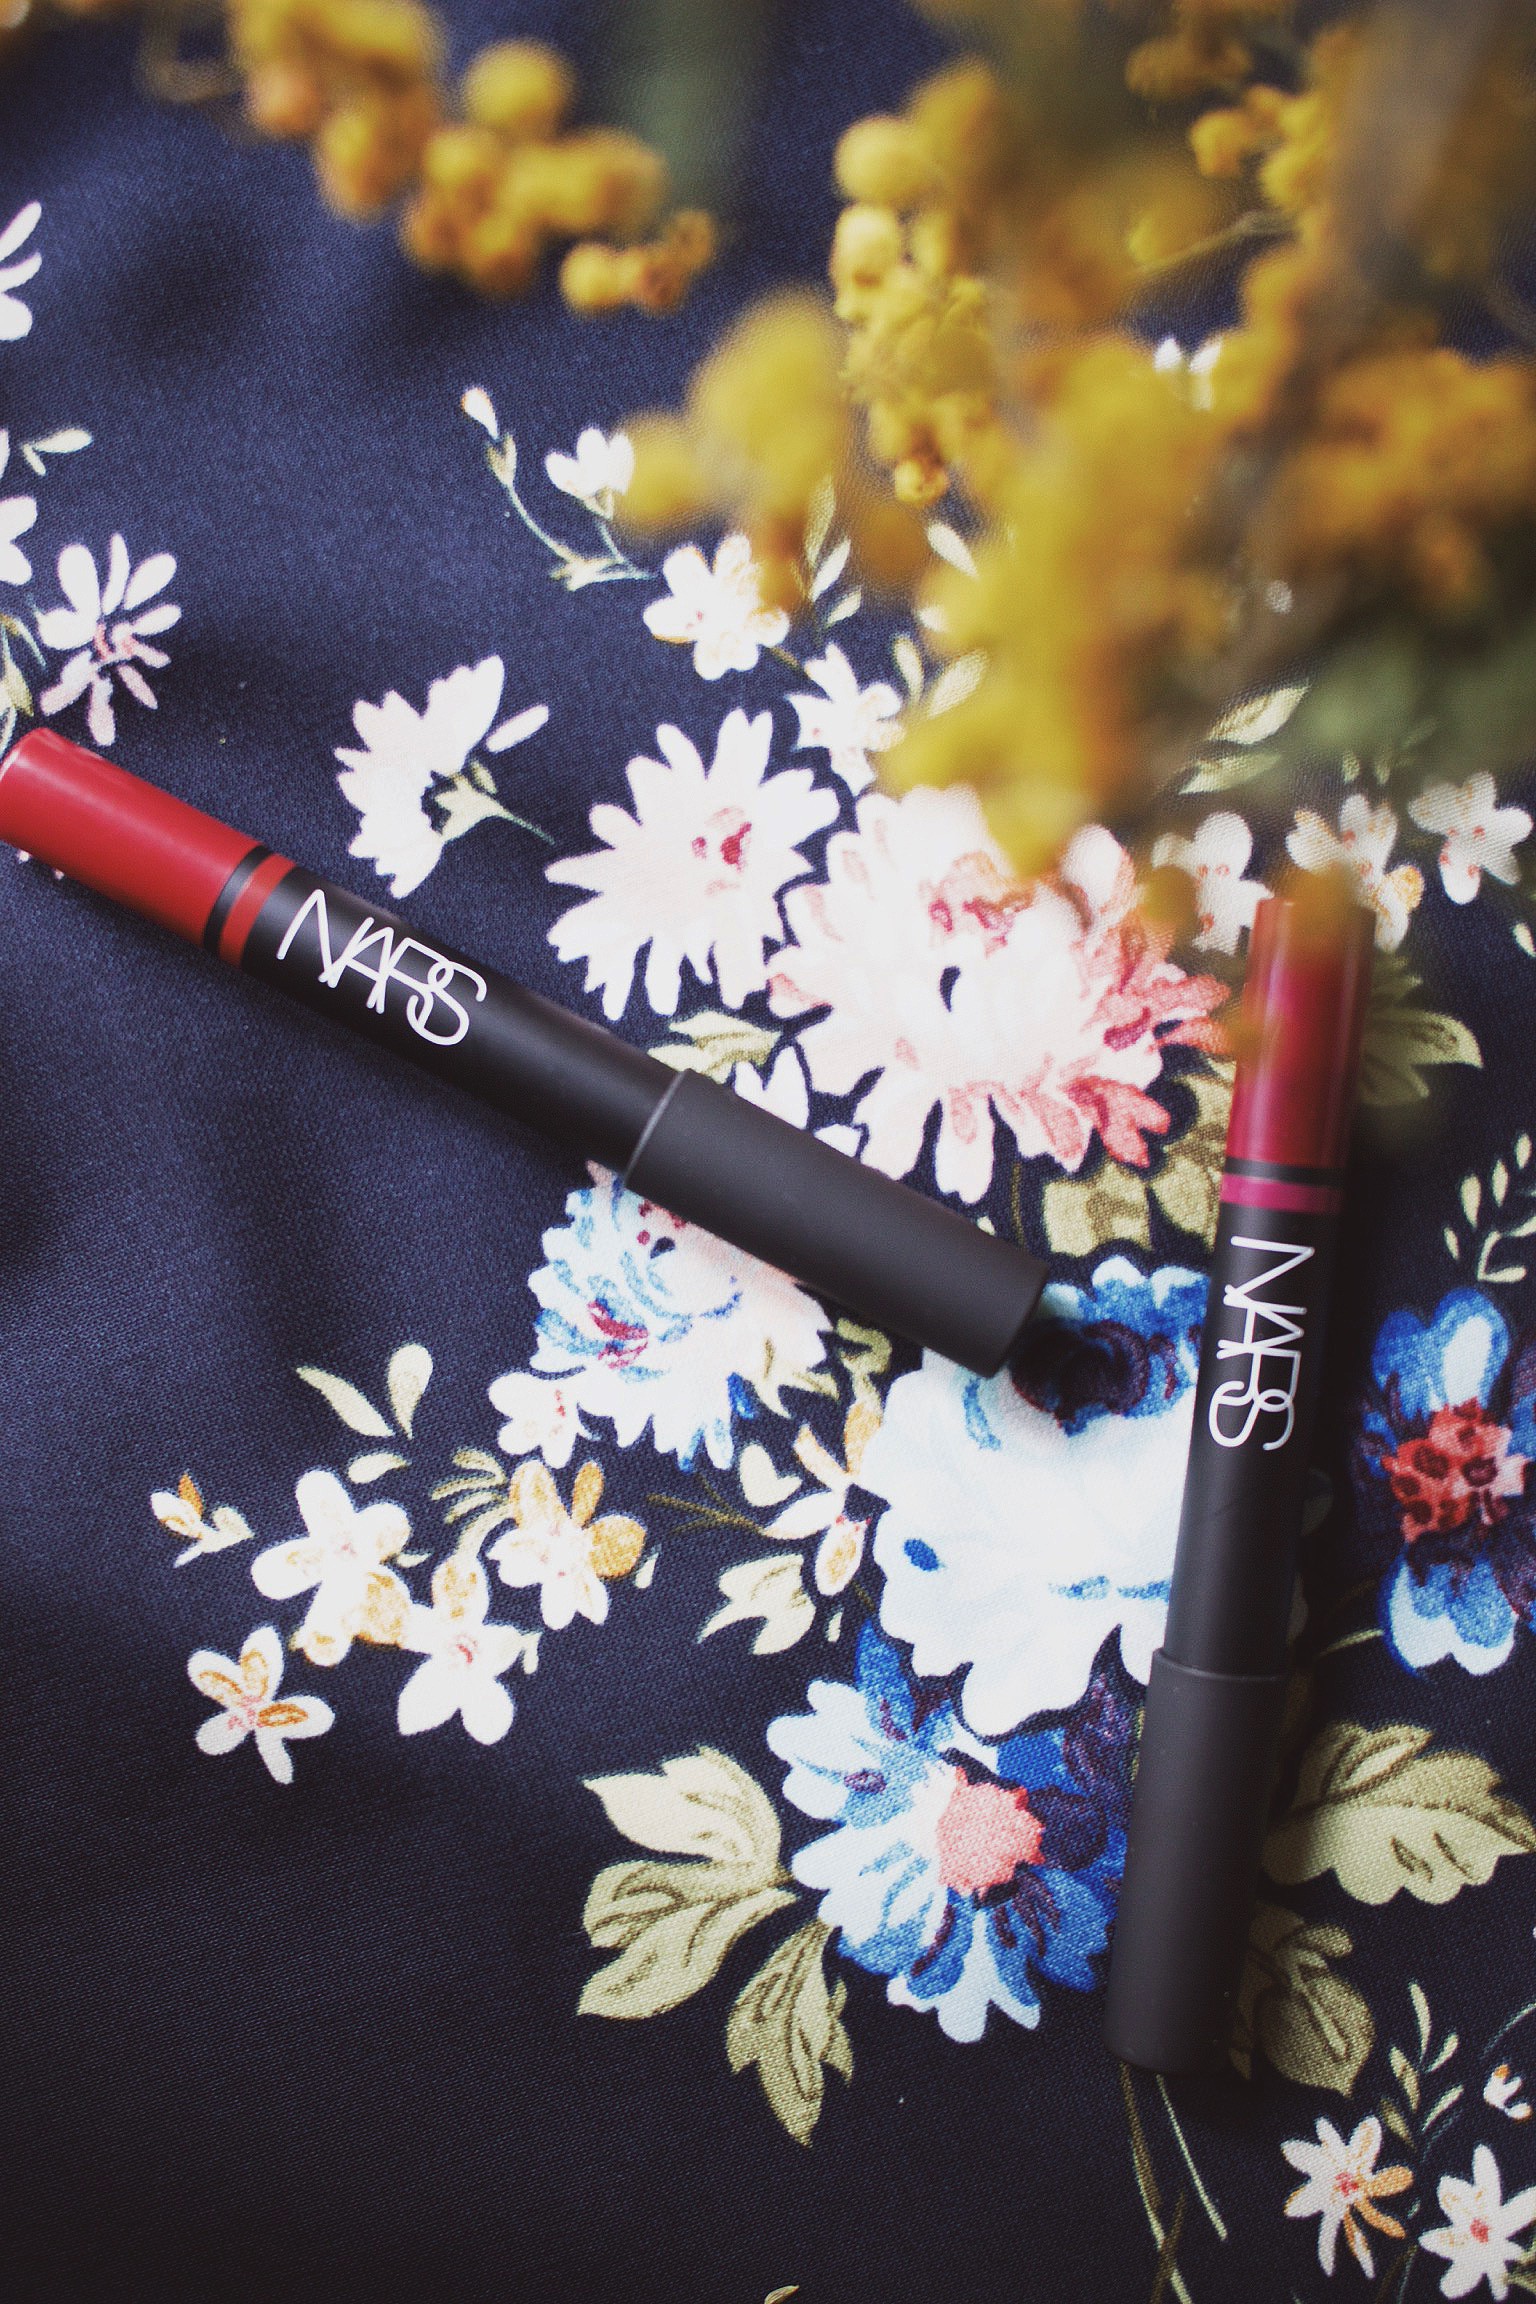 Topshop Nars 6 Bramble and Thorn